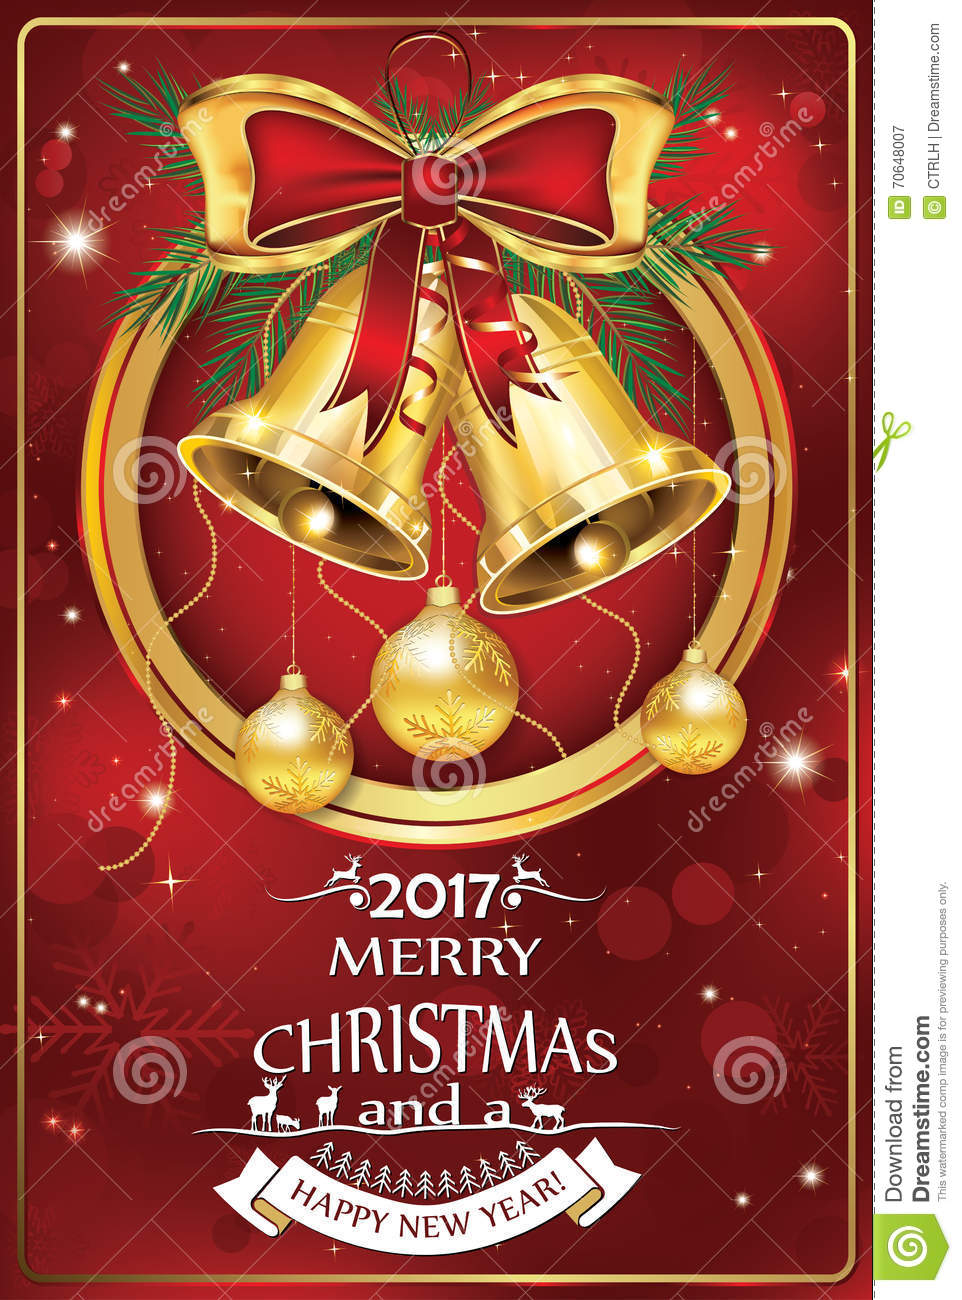 Christmas & New Year 2017 Celebration Greeting Card. Stock Vector ...